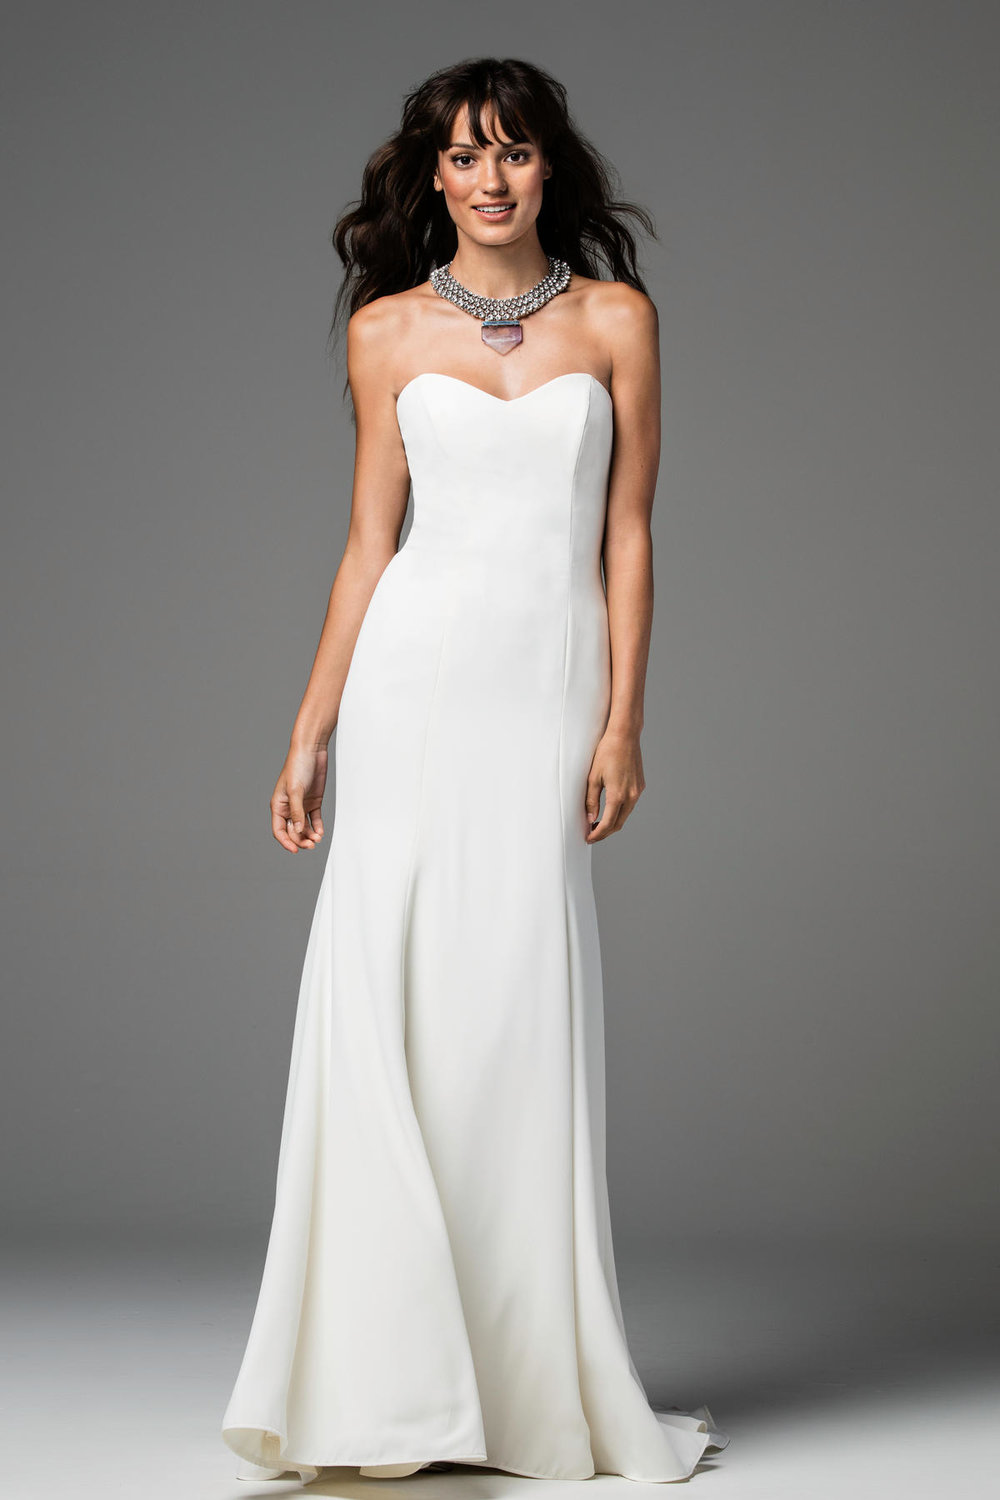 Caspia -  Caspia is a dream come true for the modern minimalist. Clean and classic Georgette Poly over Stretch Satin Lining is a perfect complement to this simple, chic silhouette. For the bride who loves to accessorize, Caspia's simplicity is the perfect place to start. Sweep train.  Colors Available - Ivory Only